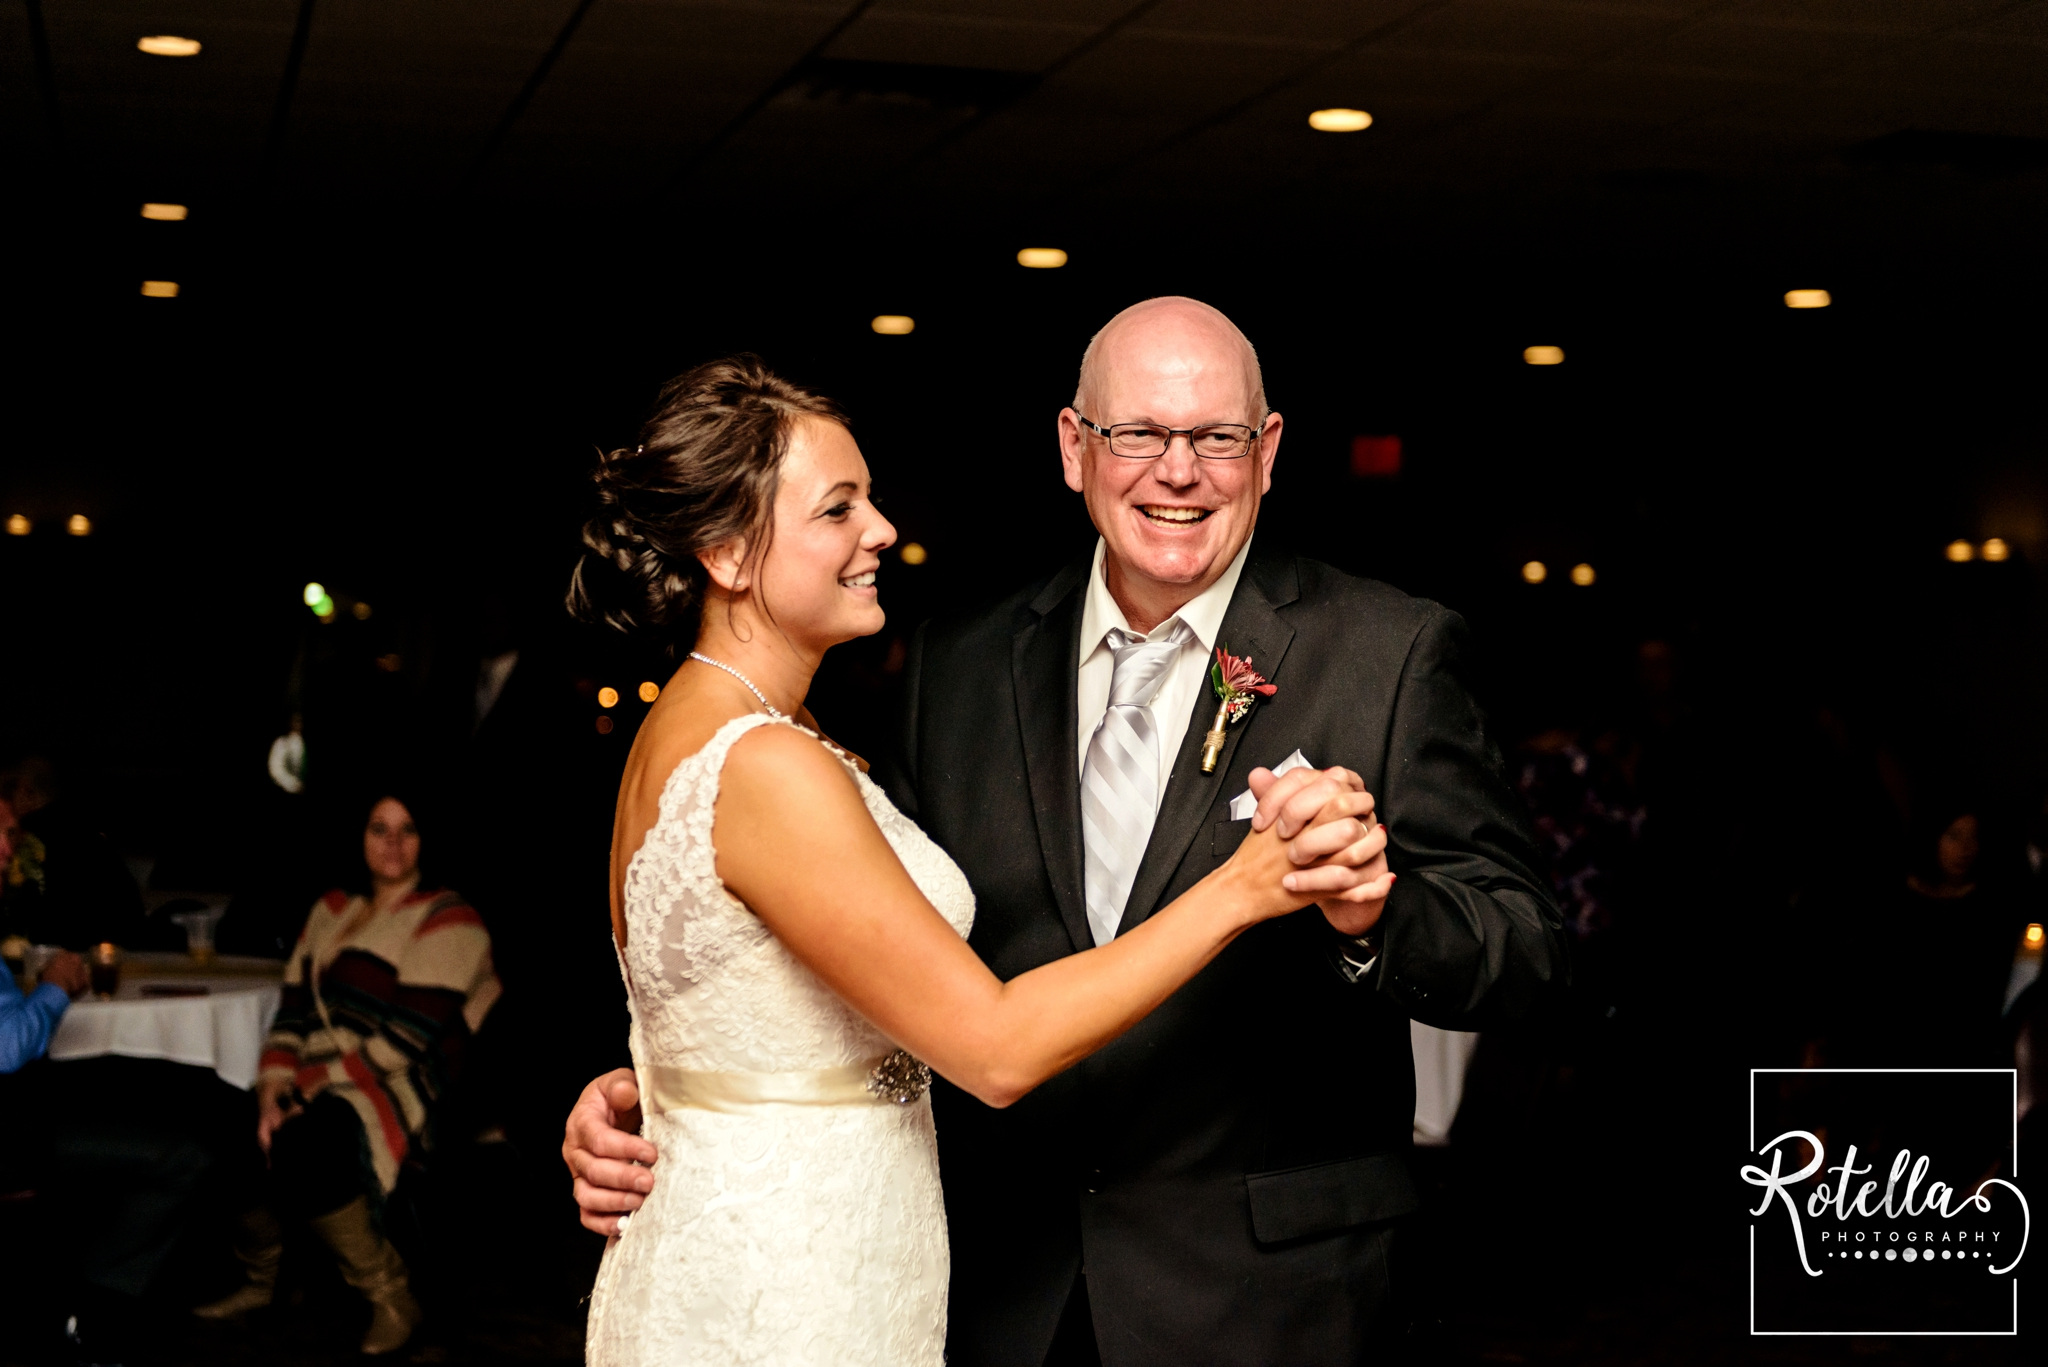 Father and bride smiling while dancing with daughter - Rotella Photography